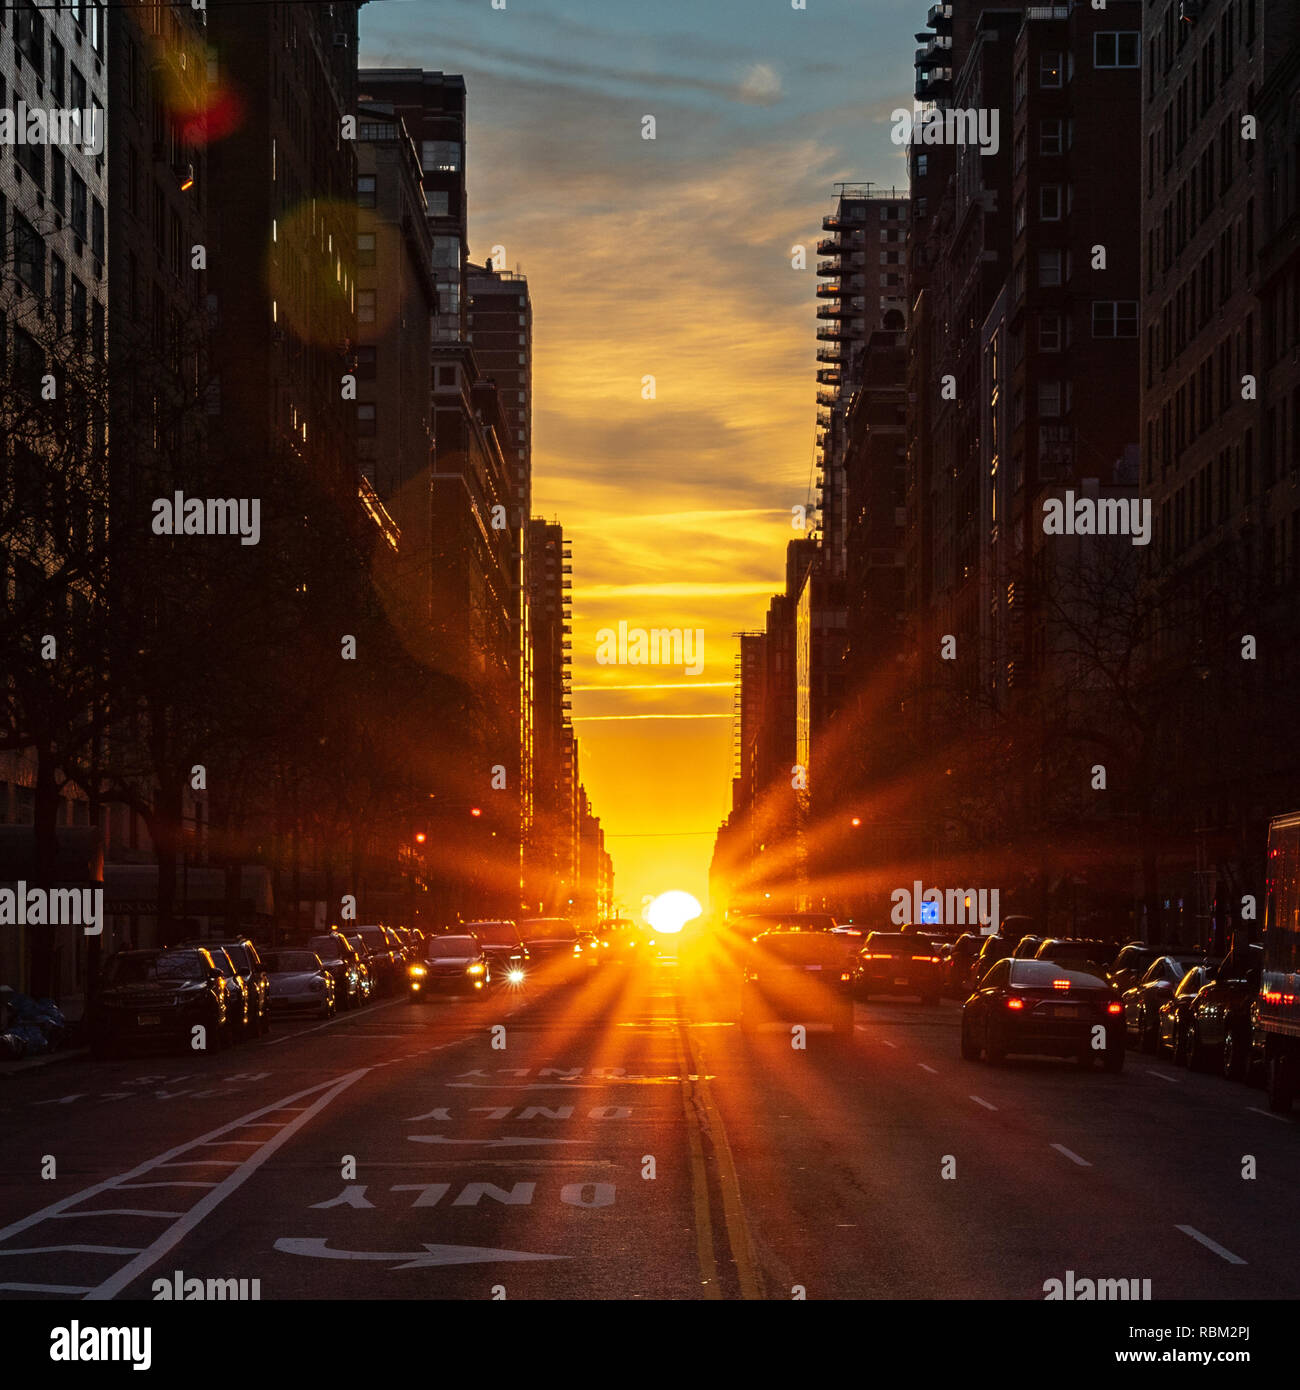 New York, USA. 11th Jan 2019. The rising sun is seen from Manhattan during the Winter Solstice. Twice a year the sun is perfectly aligned with the East-West streets of the main New York City street grid, a phenomenon called Manhattanhenge or Manhattan Solstice. Credit: Enrique Shore/Alamy Live News - Stock Image